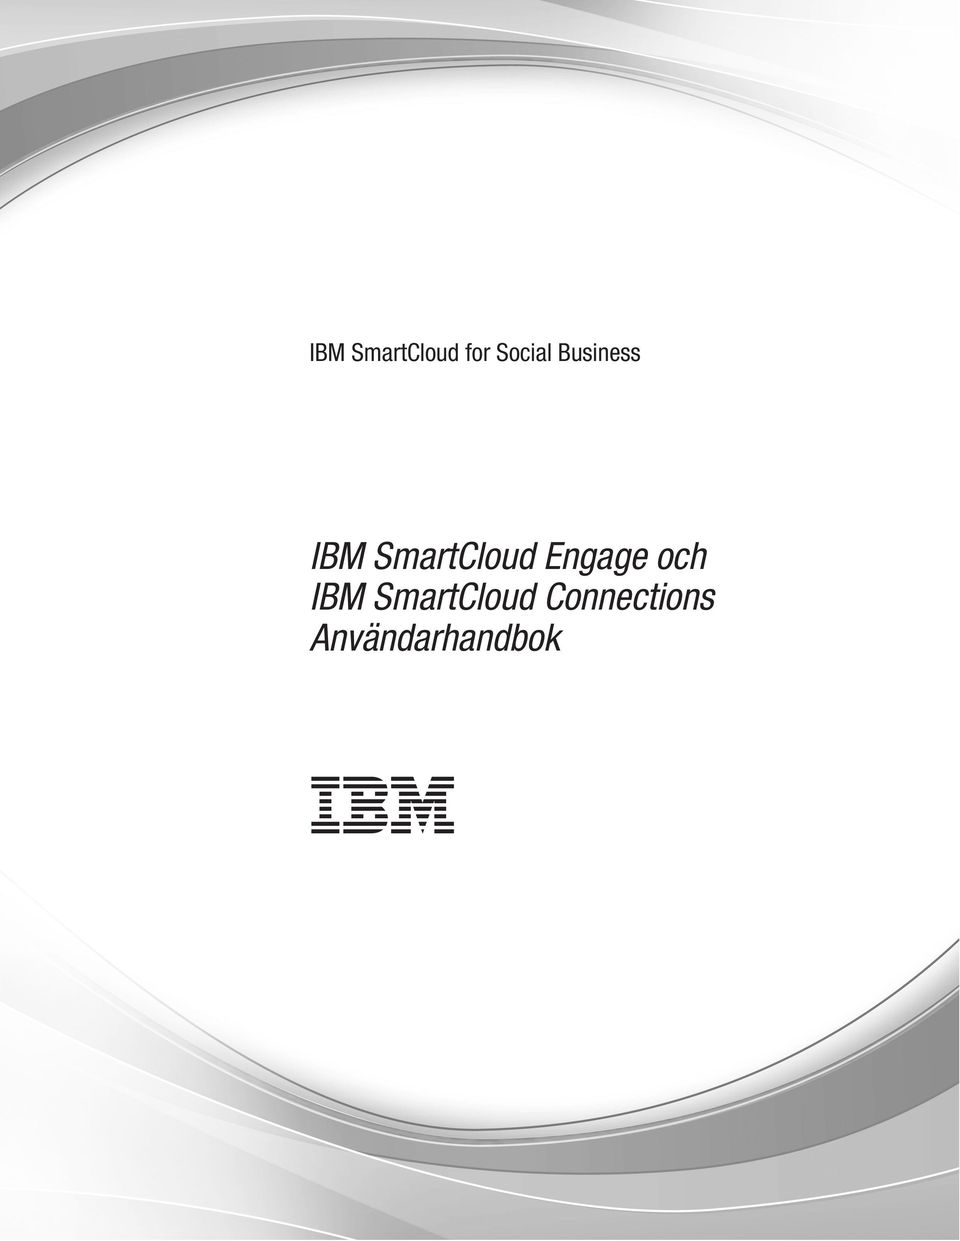 Engage och IBM SmartCloud